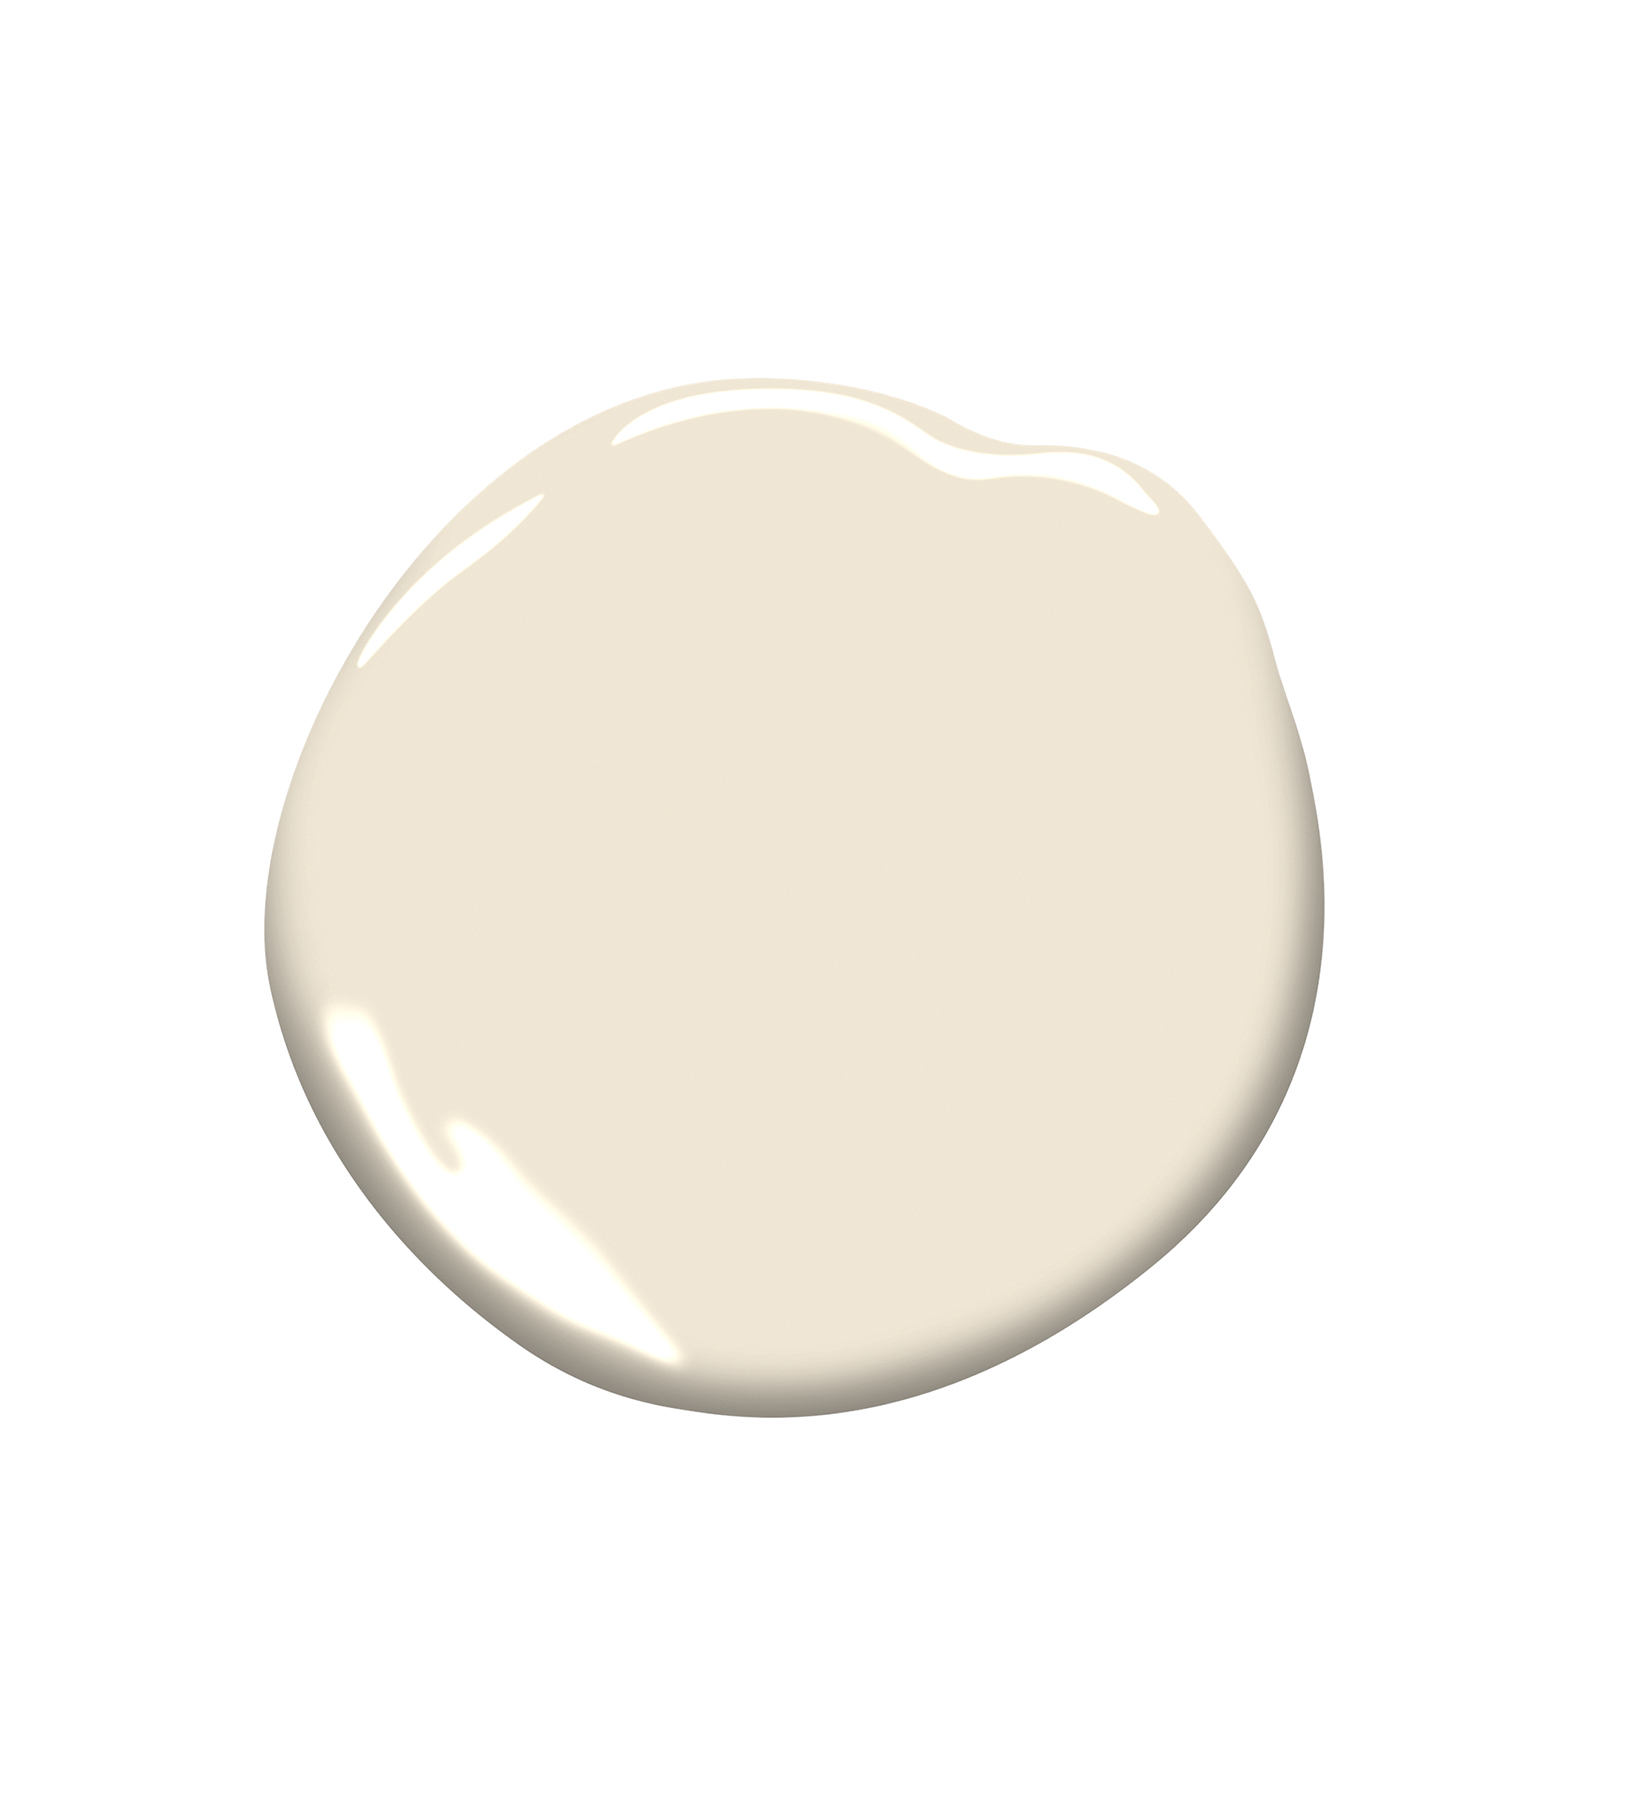 Linen White by Benjamin Moore